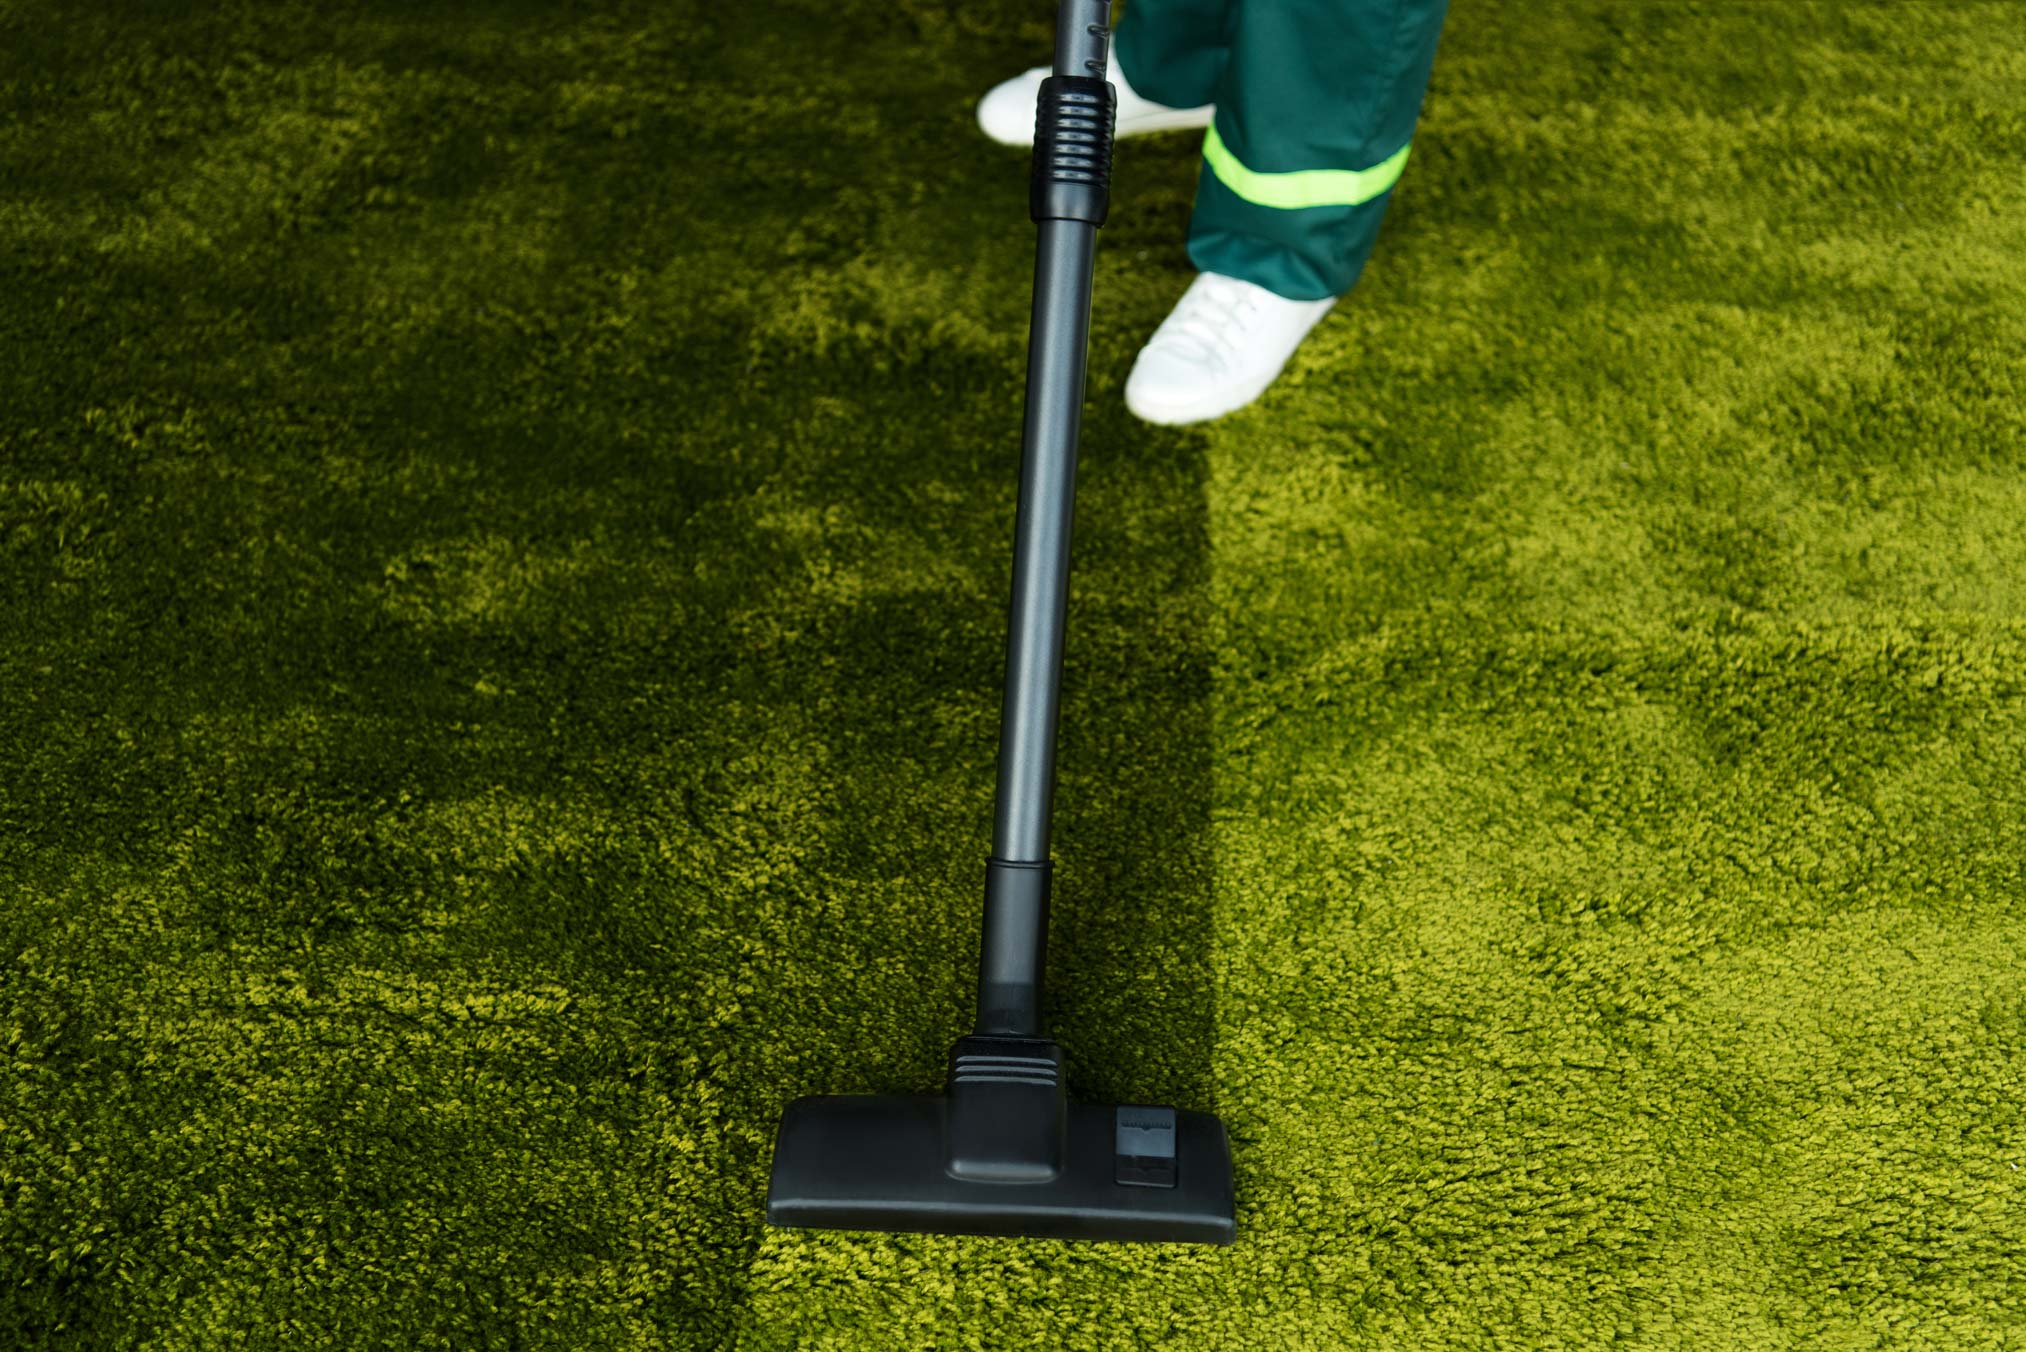 low-section-of-person-cleaning-green-carpet-with-v-QKZLDNG